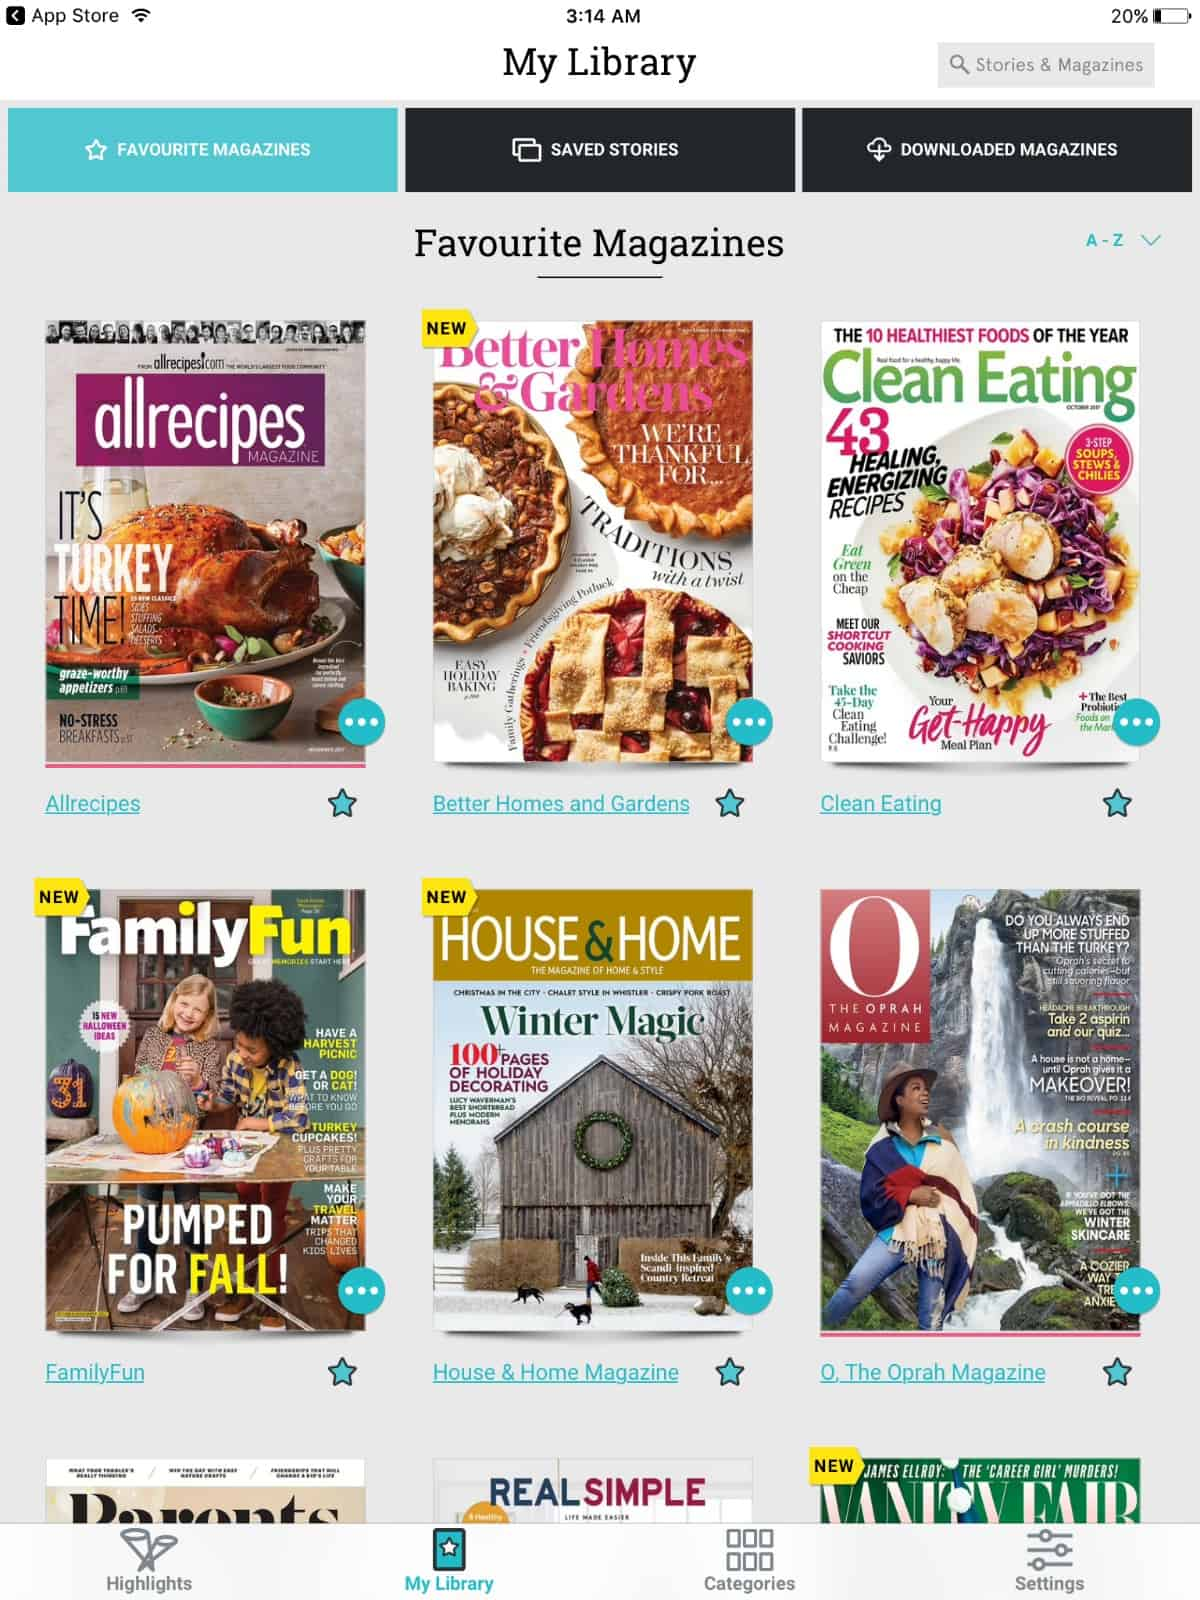 Texture App Library - Favourite Magazines